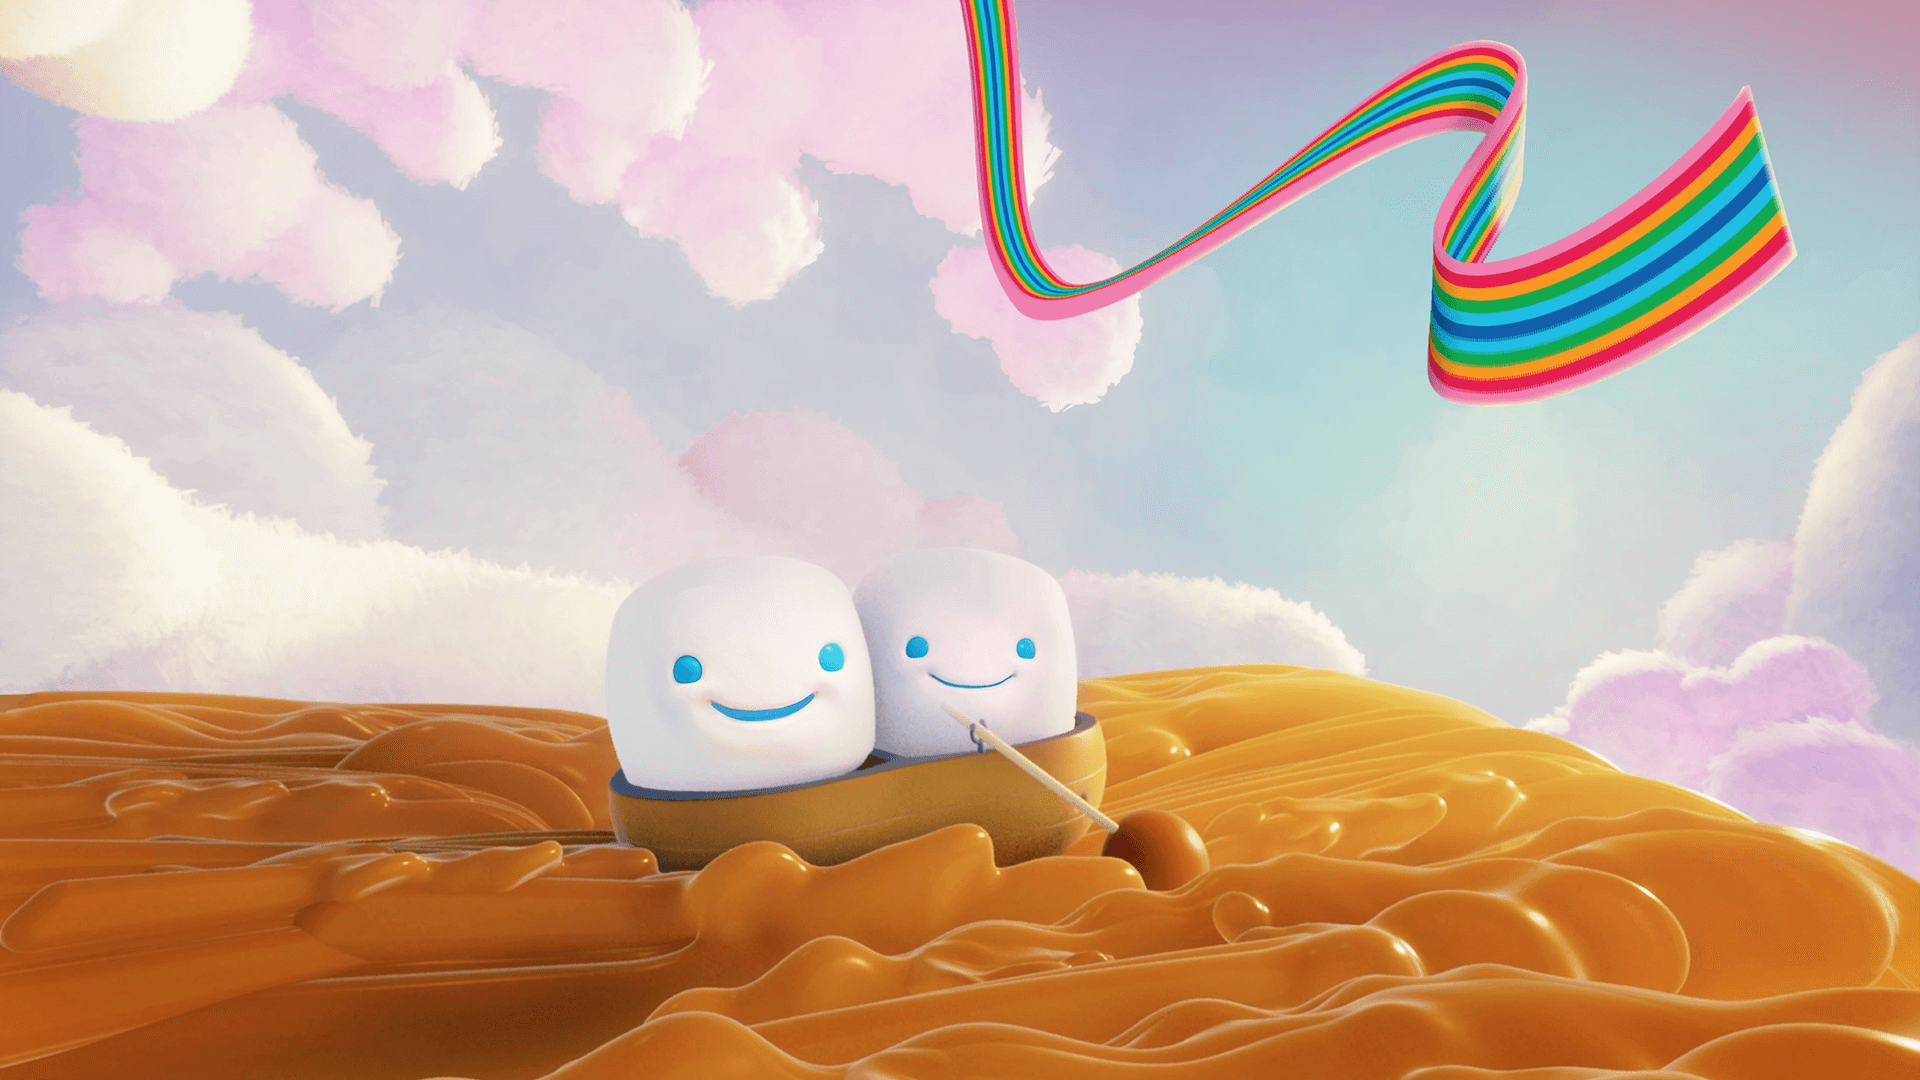 Jet-Puffed Marshmallows animated commercial concept art